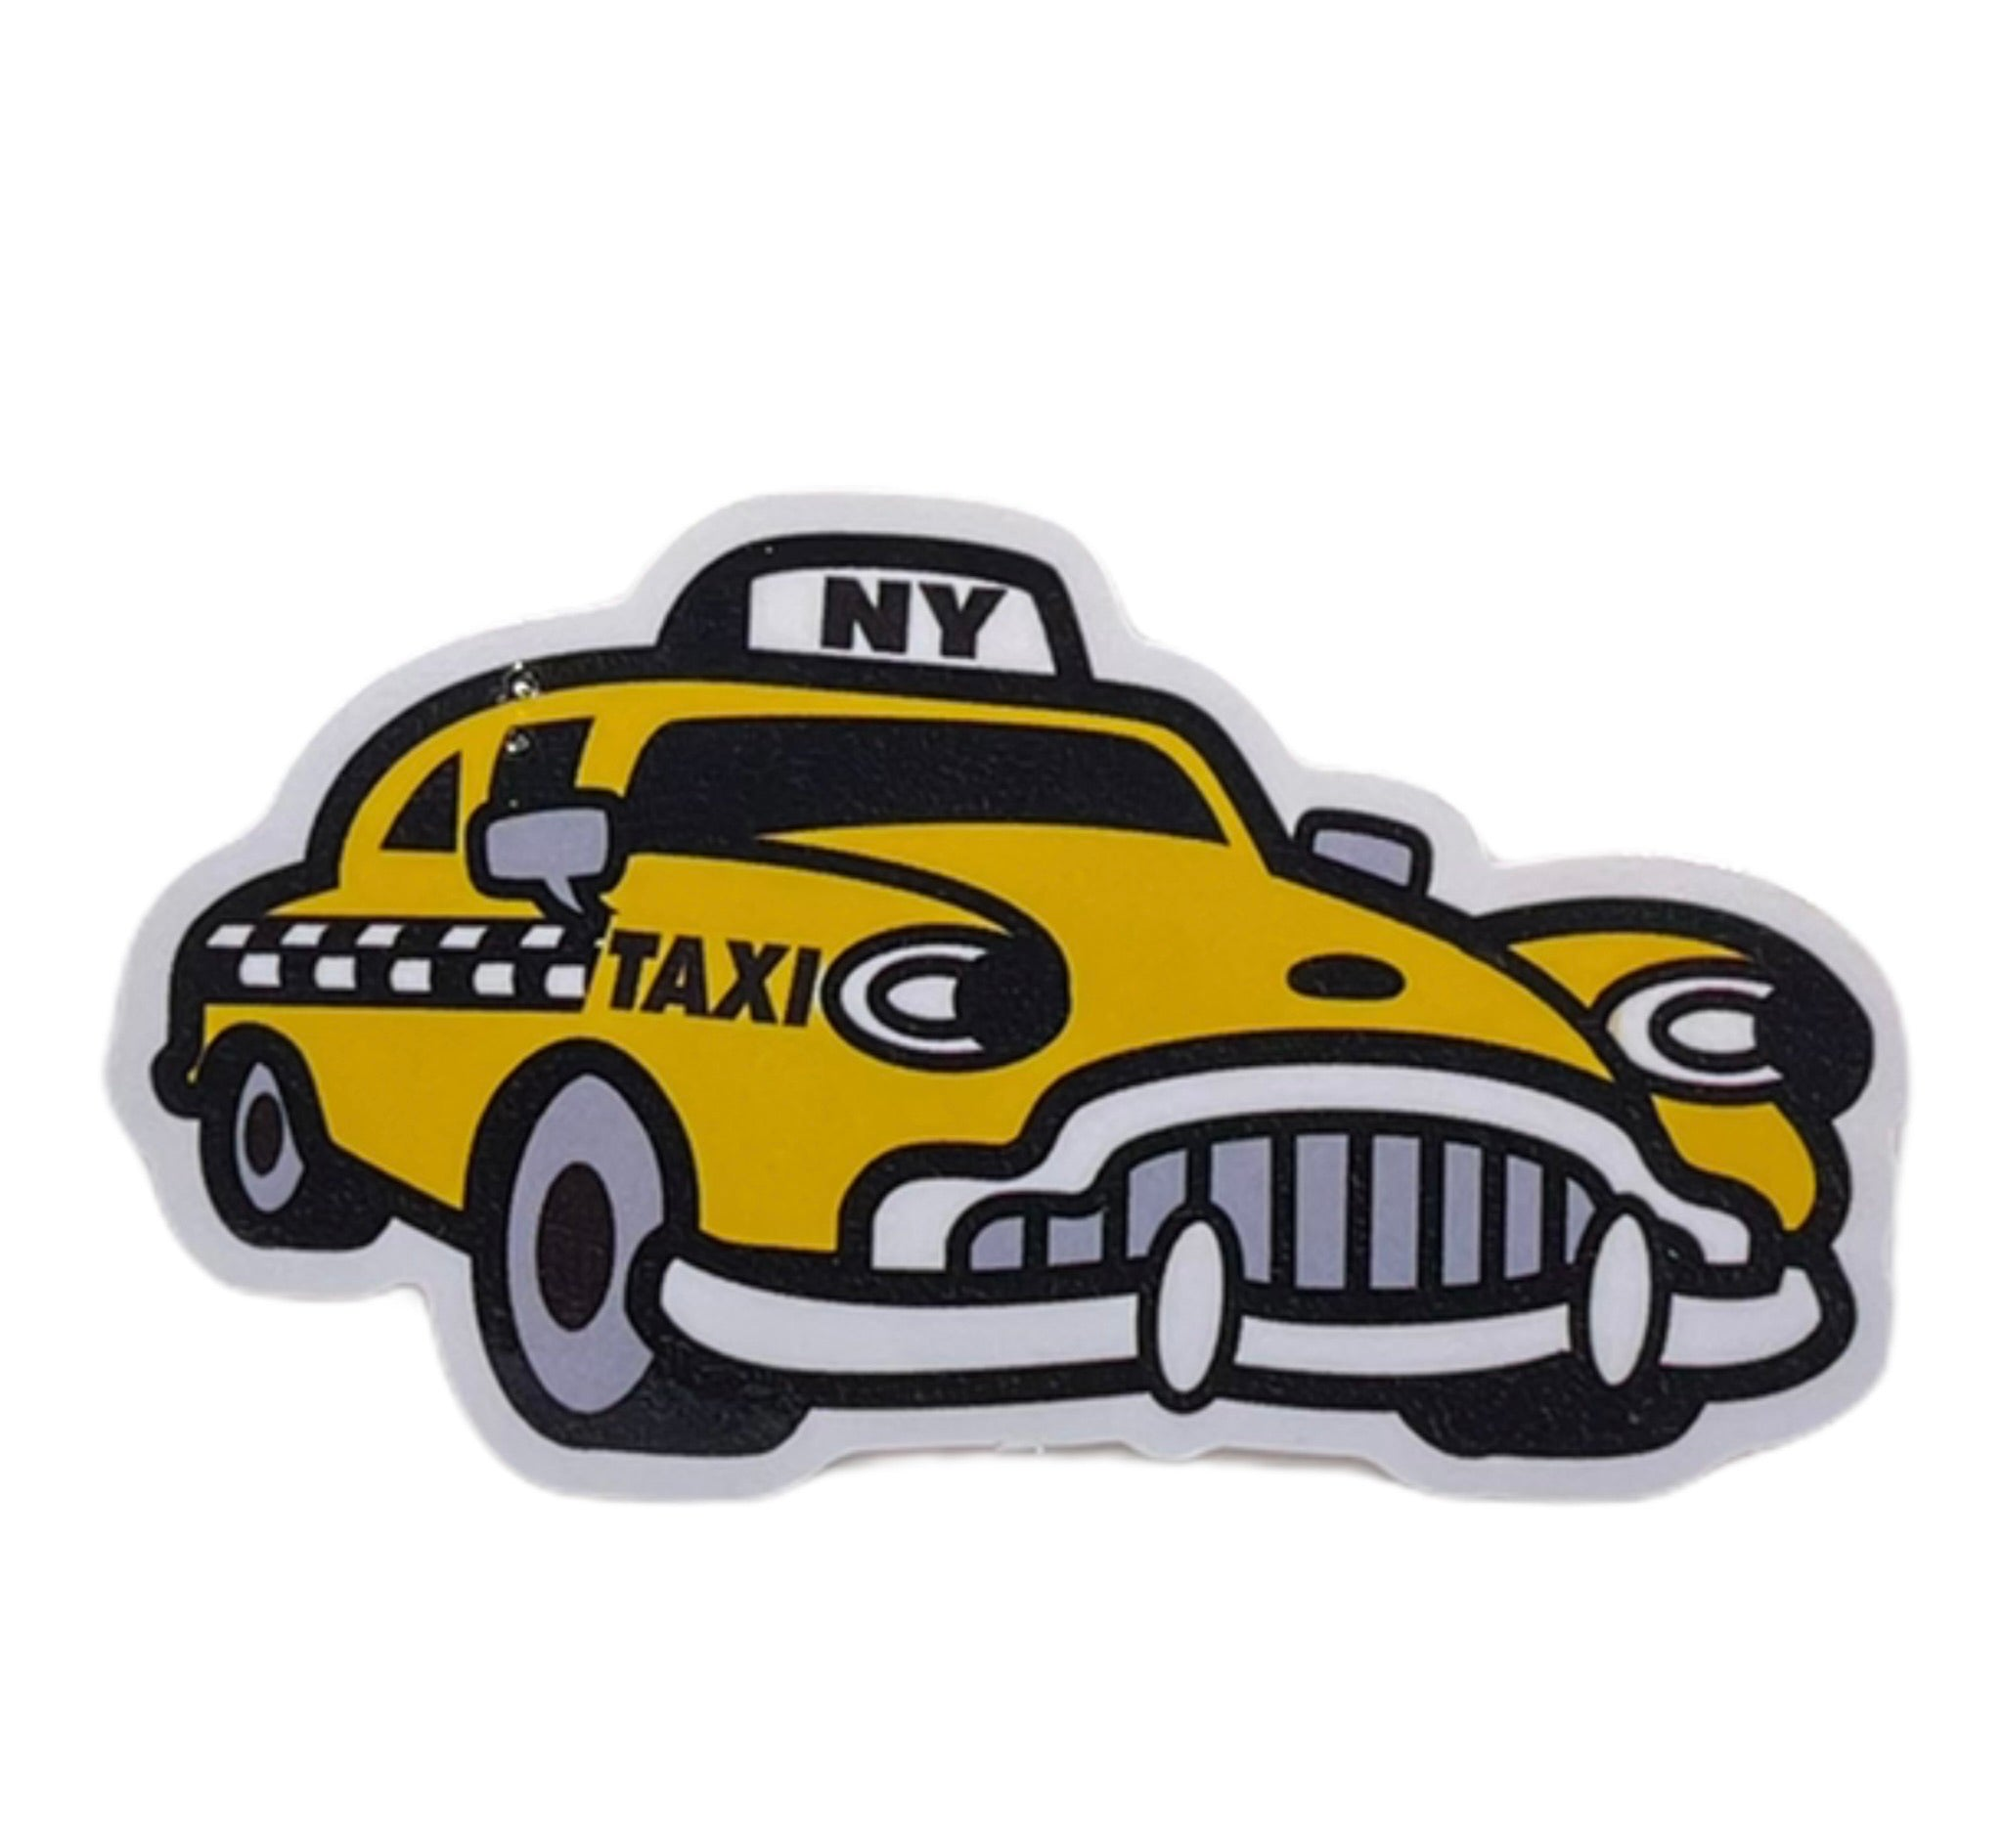 New York Taxi Sticker